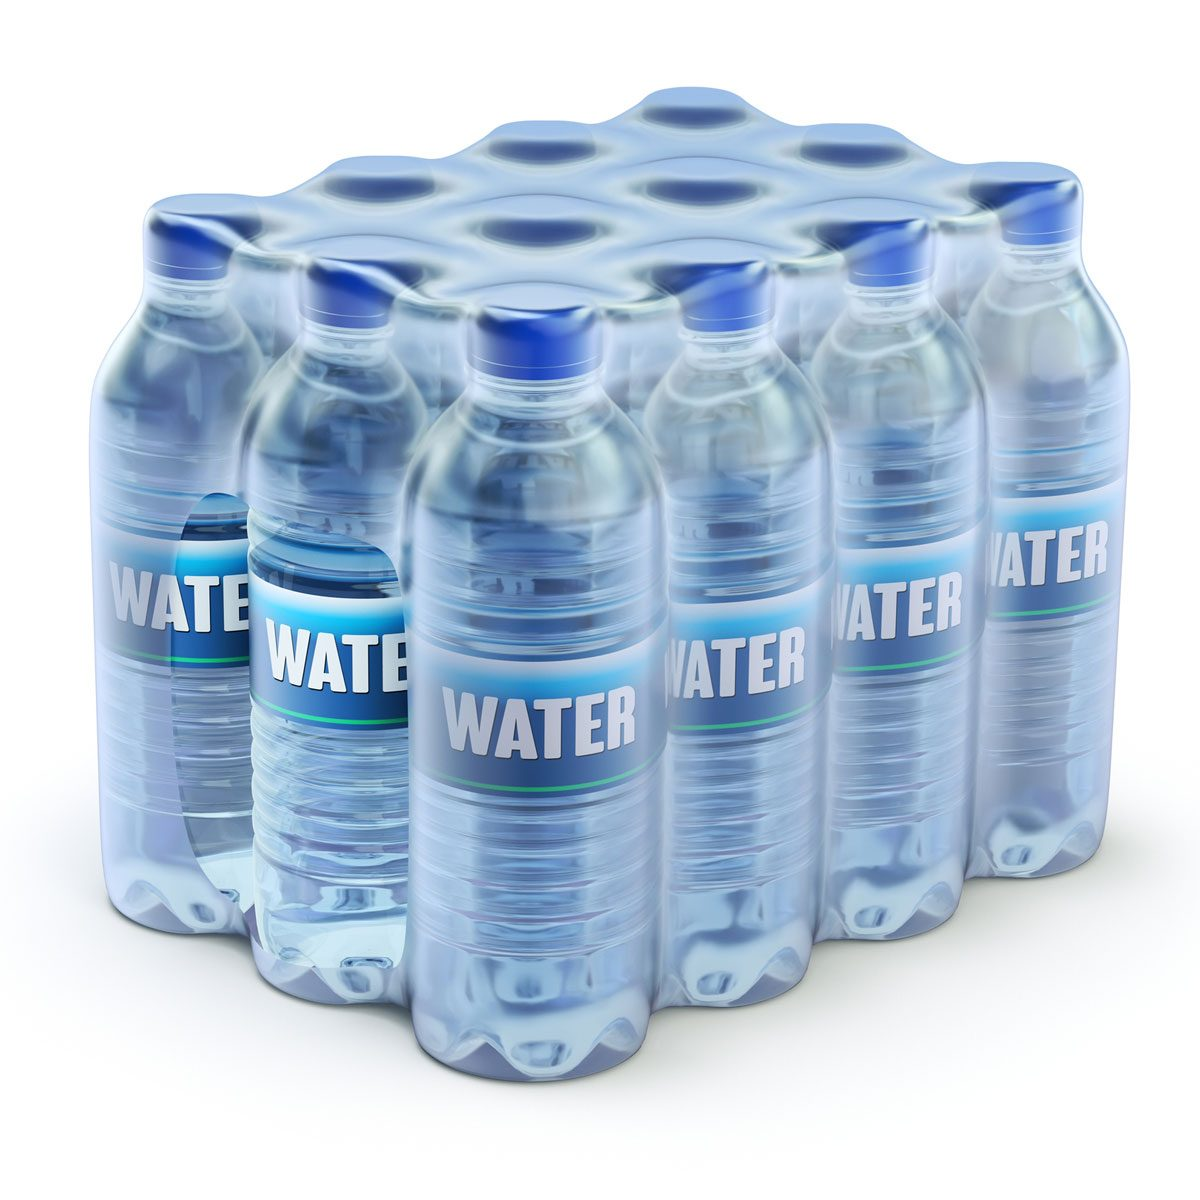 Package of a dozen water bottles